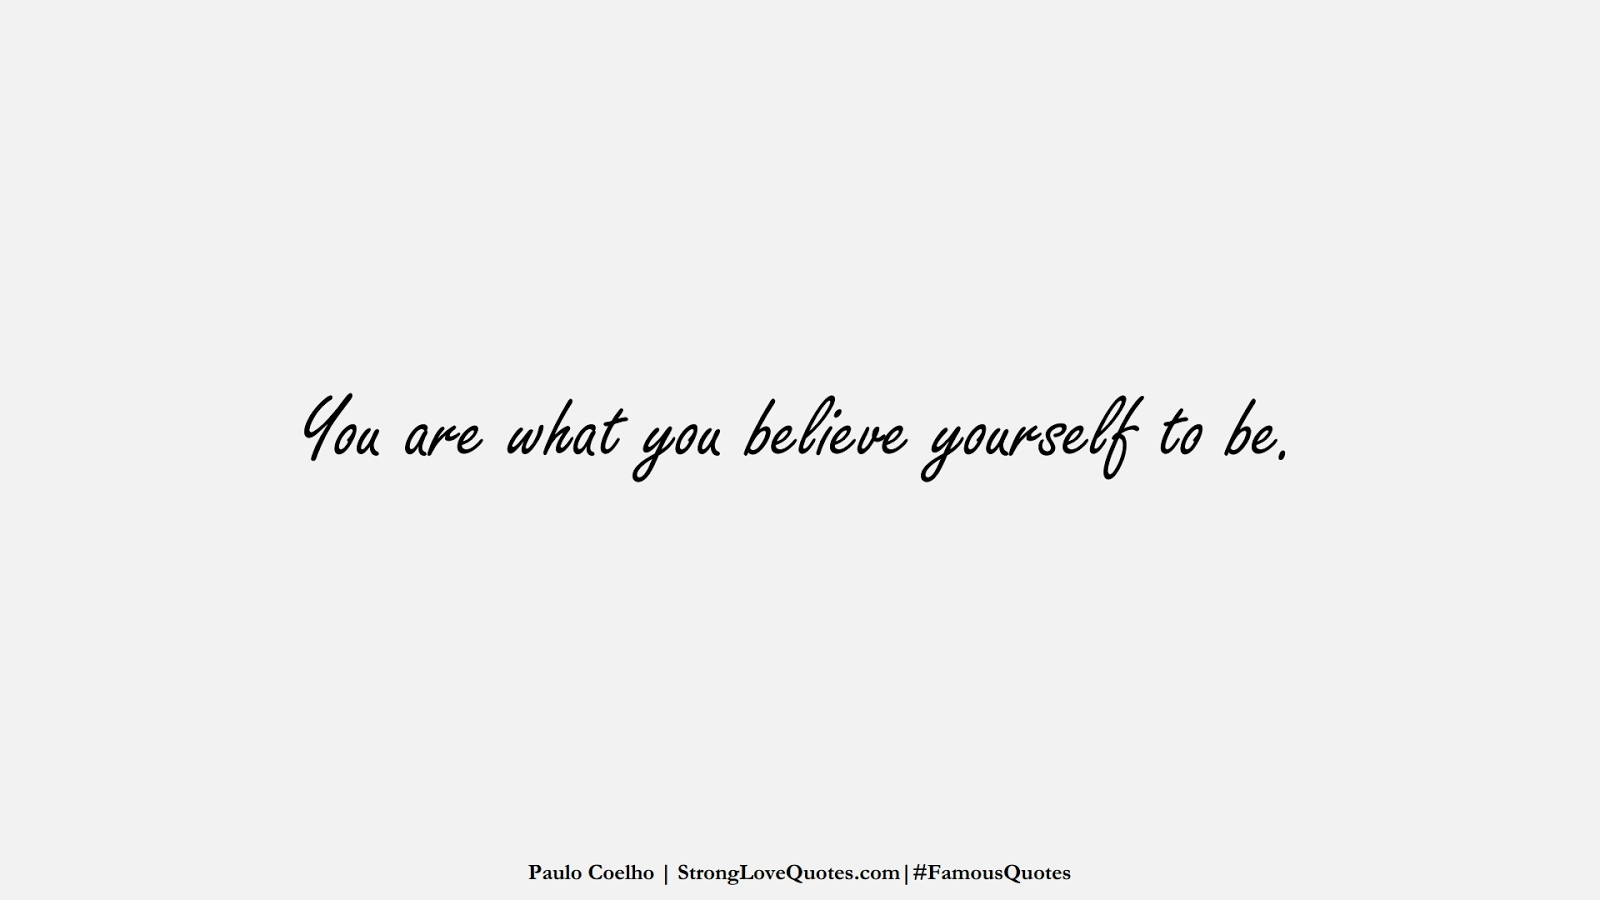 You are what you believe yourself to be. (Paulo Coelho);  #FamousQuotes